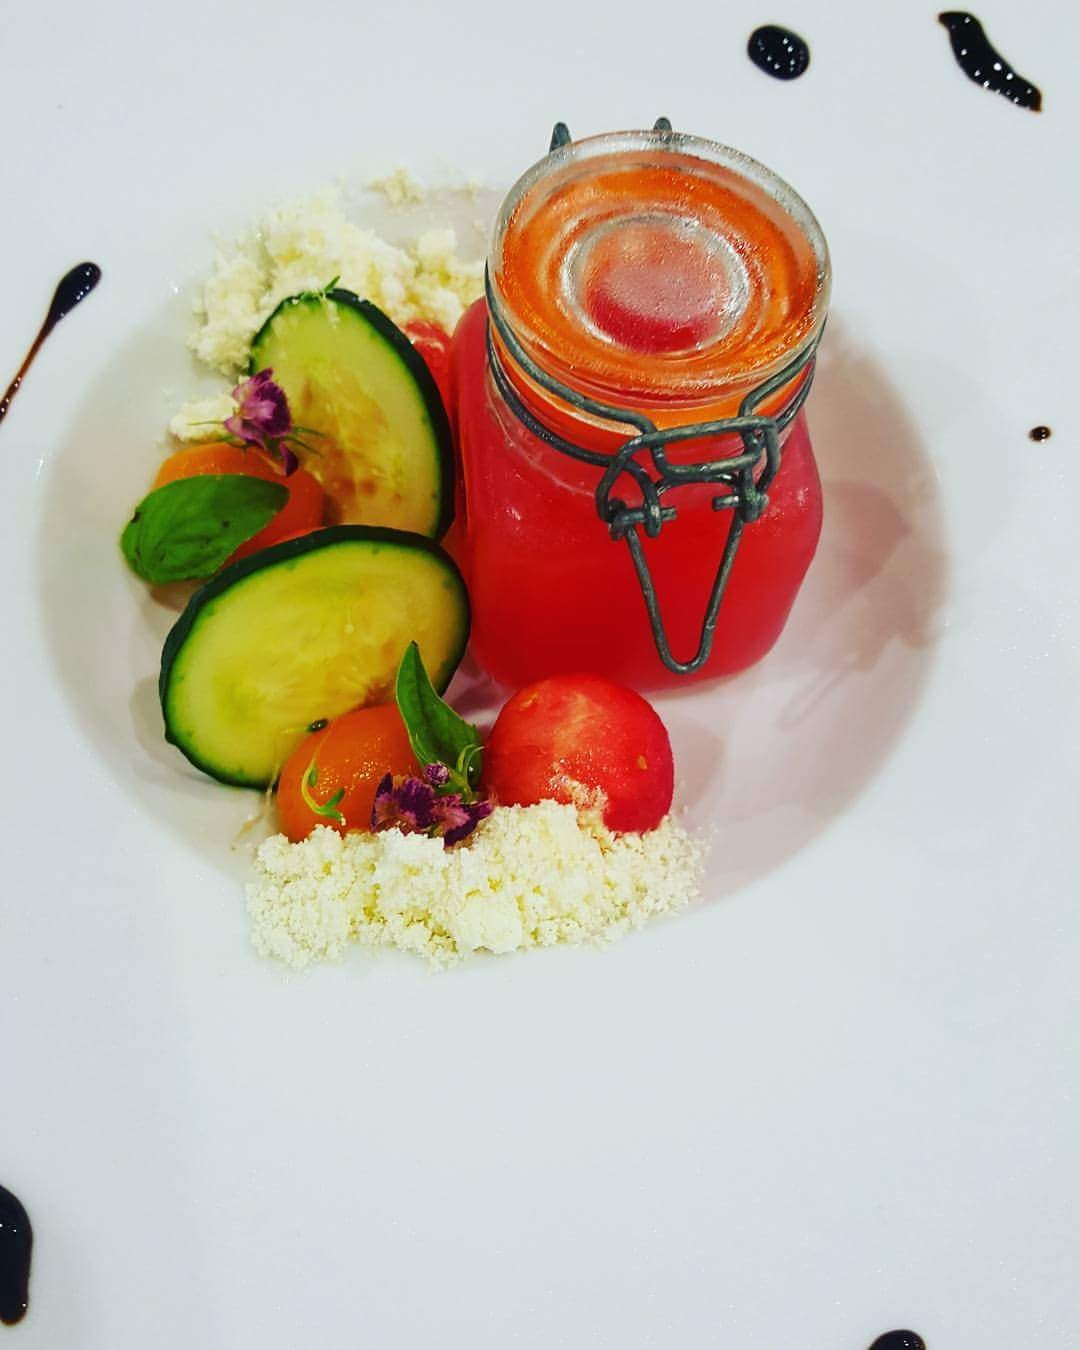 My version of a Bloody Mary as an amazing chilled soup.